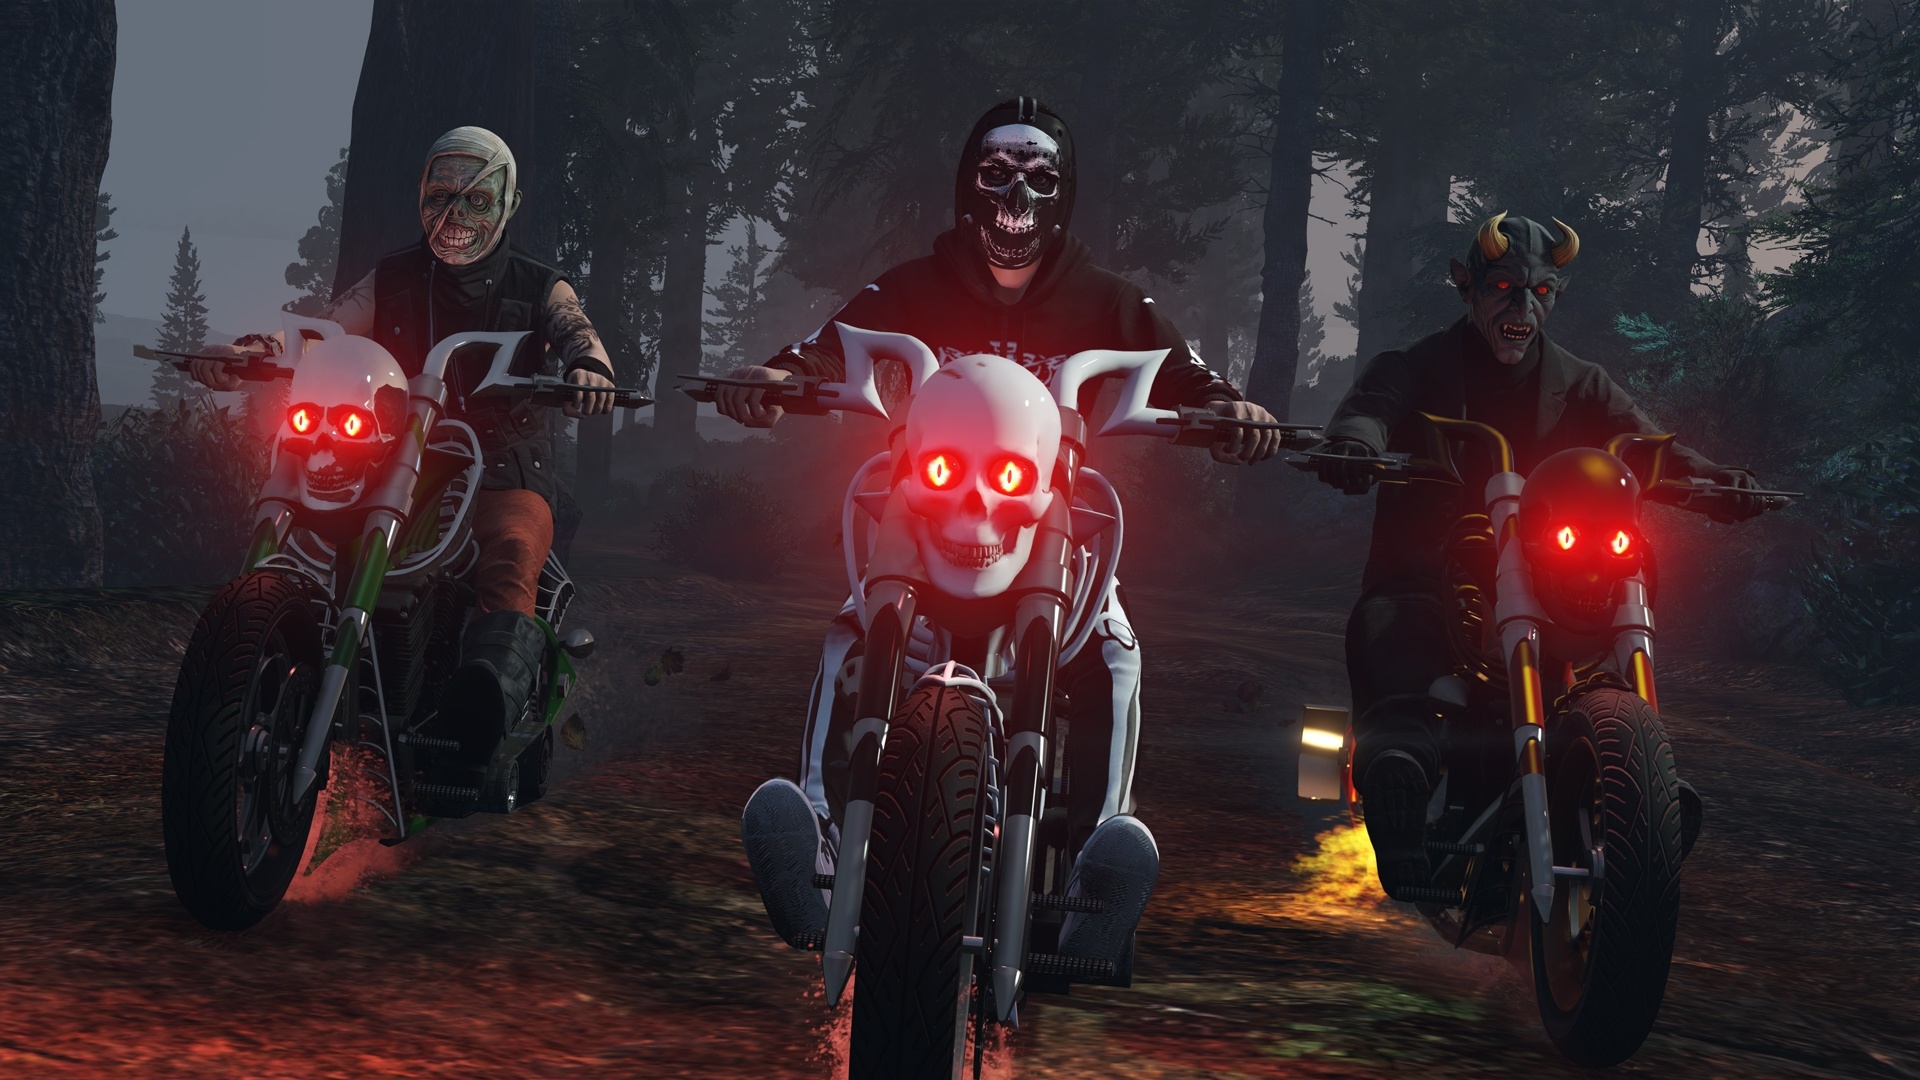 Halloween Horn Gta 5 2020 Halloween in GTA Online: New Sanctus Motorcycle, T Shirt Unlocks